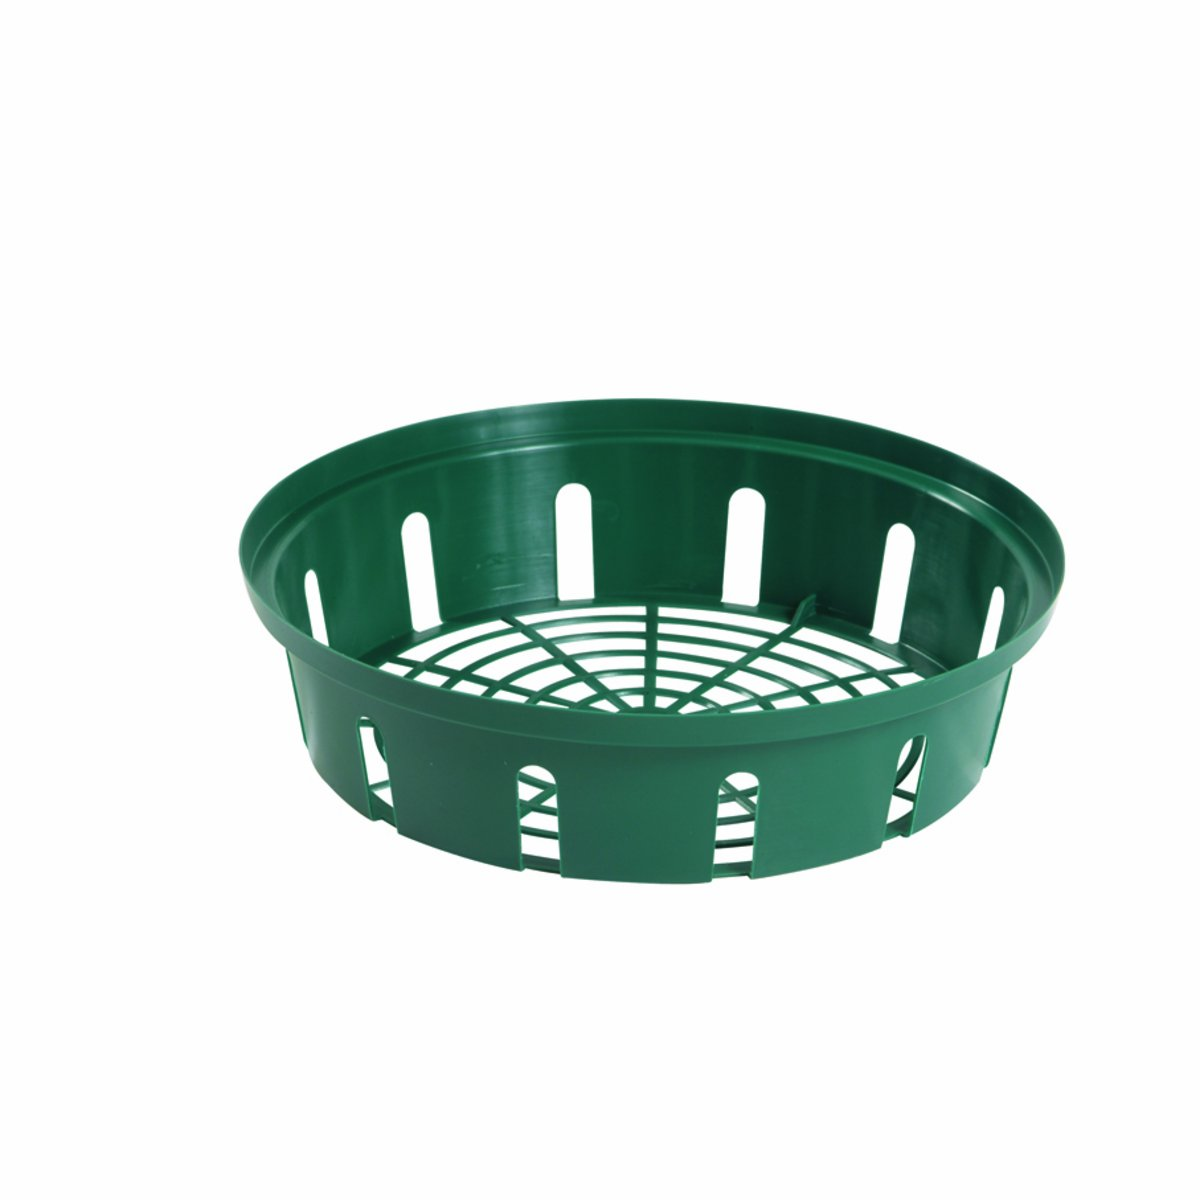 Bosmere N430 26cm Small Round Bulb Baskets (3 Pieces) Bosmere Products Ltd